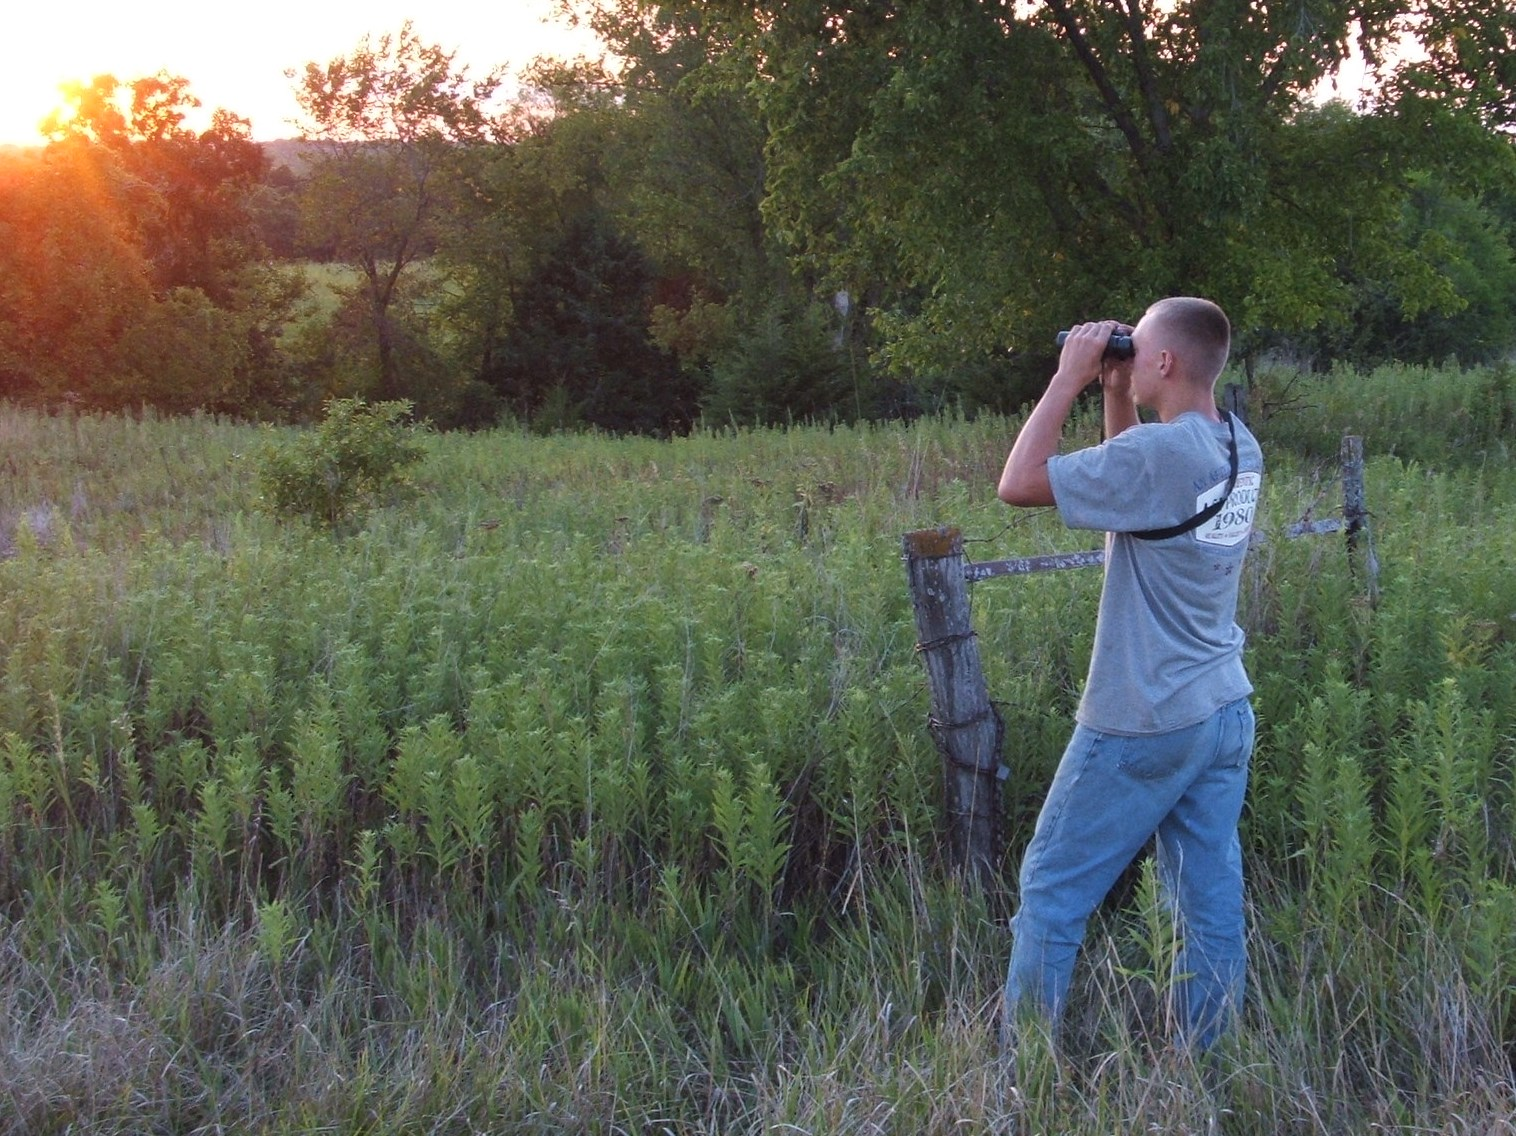 For most hunters, scouting long range is really hard to accomplish.  But, it is a great way to pattern and find good bucks during the lead up to opener.